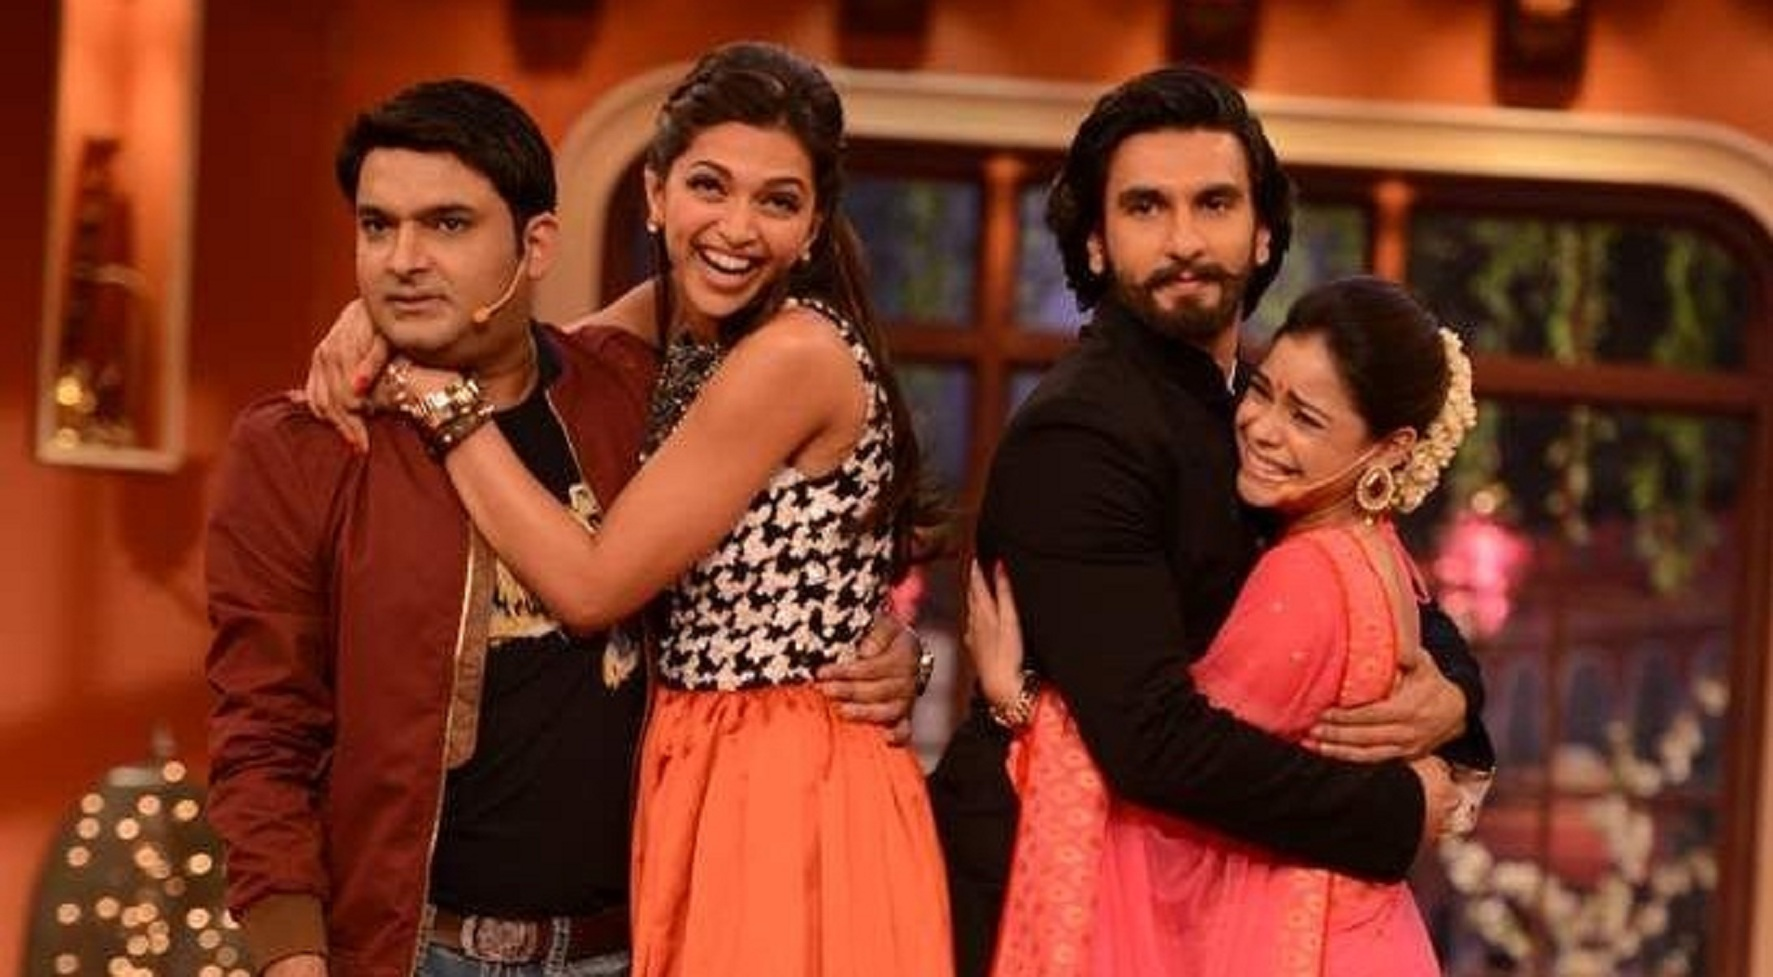 Deepika and Ranveer To Make First Appearance As A Married Couple on